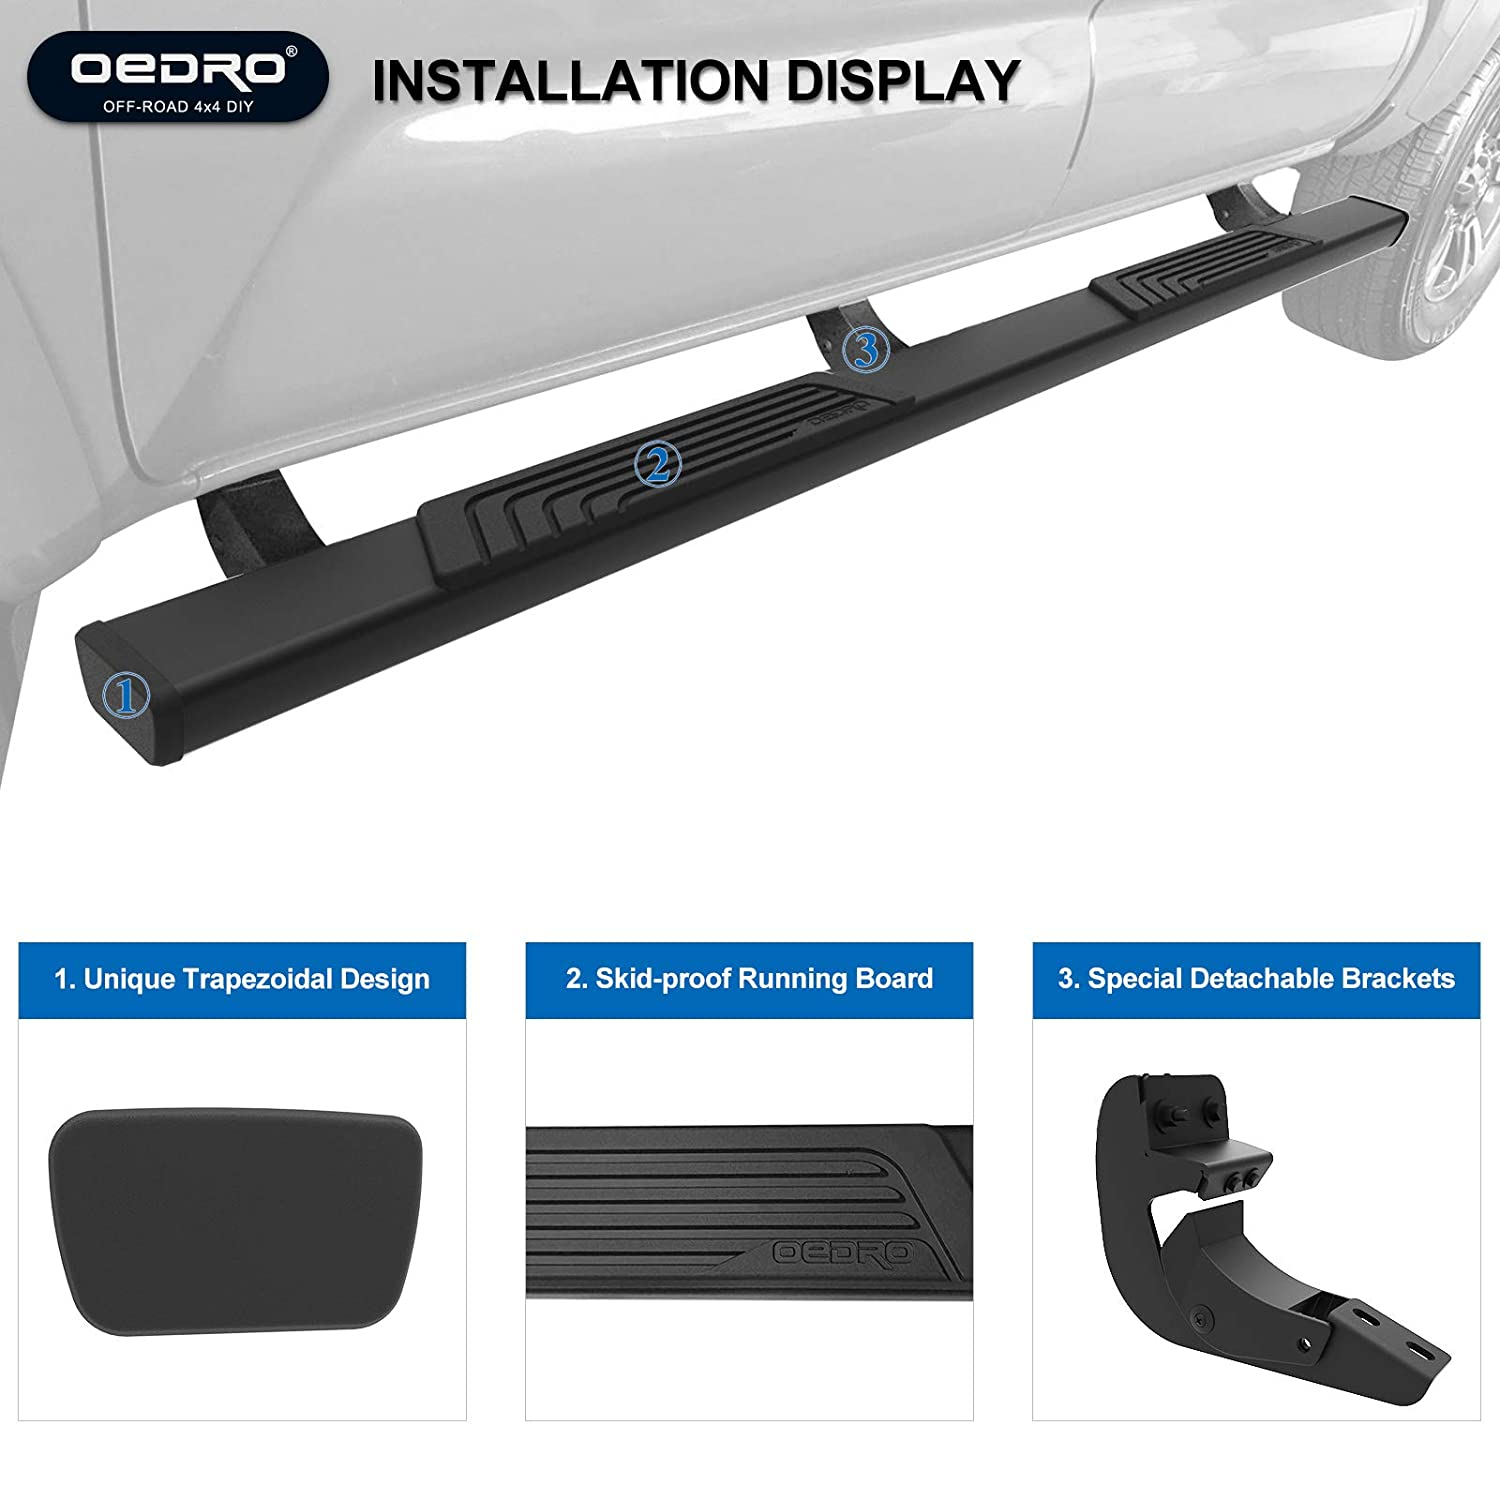 oEdRo Running Boards Fit for 2009-2018 Dodge Ram 1500 /& 2010-2018 Ram 2500//3500 Crew Cab Textured Black Heavy Duty Shield Kit Design 4 inch Nerf Bars Side Steps